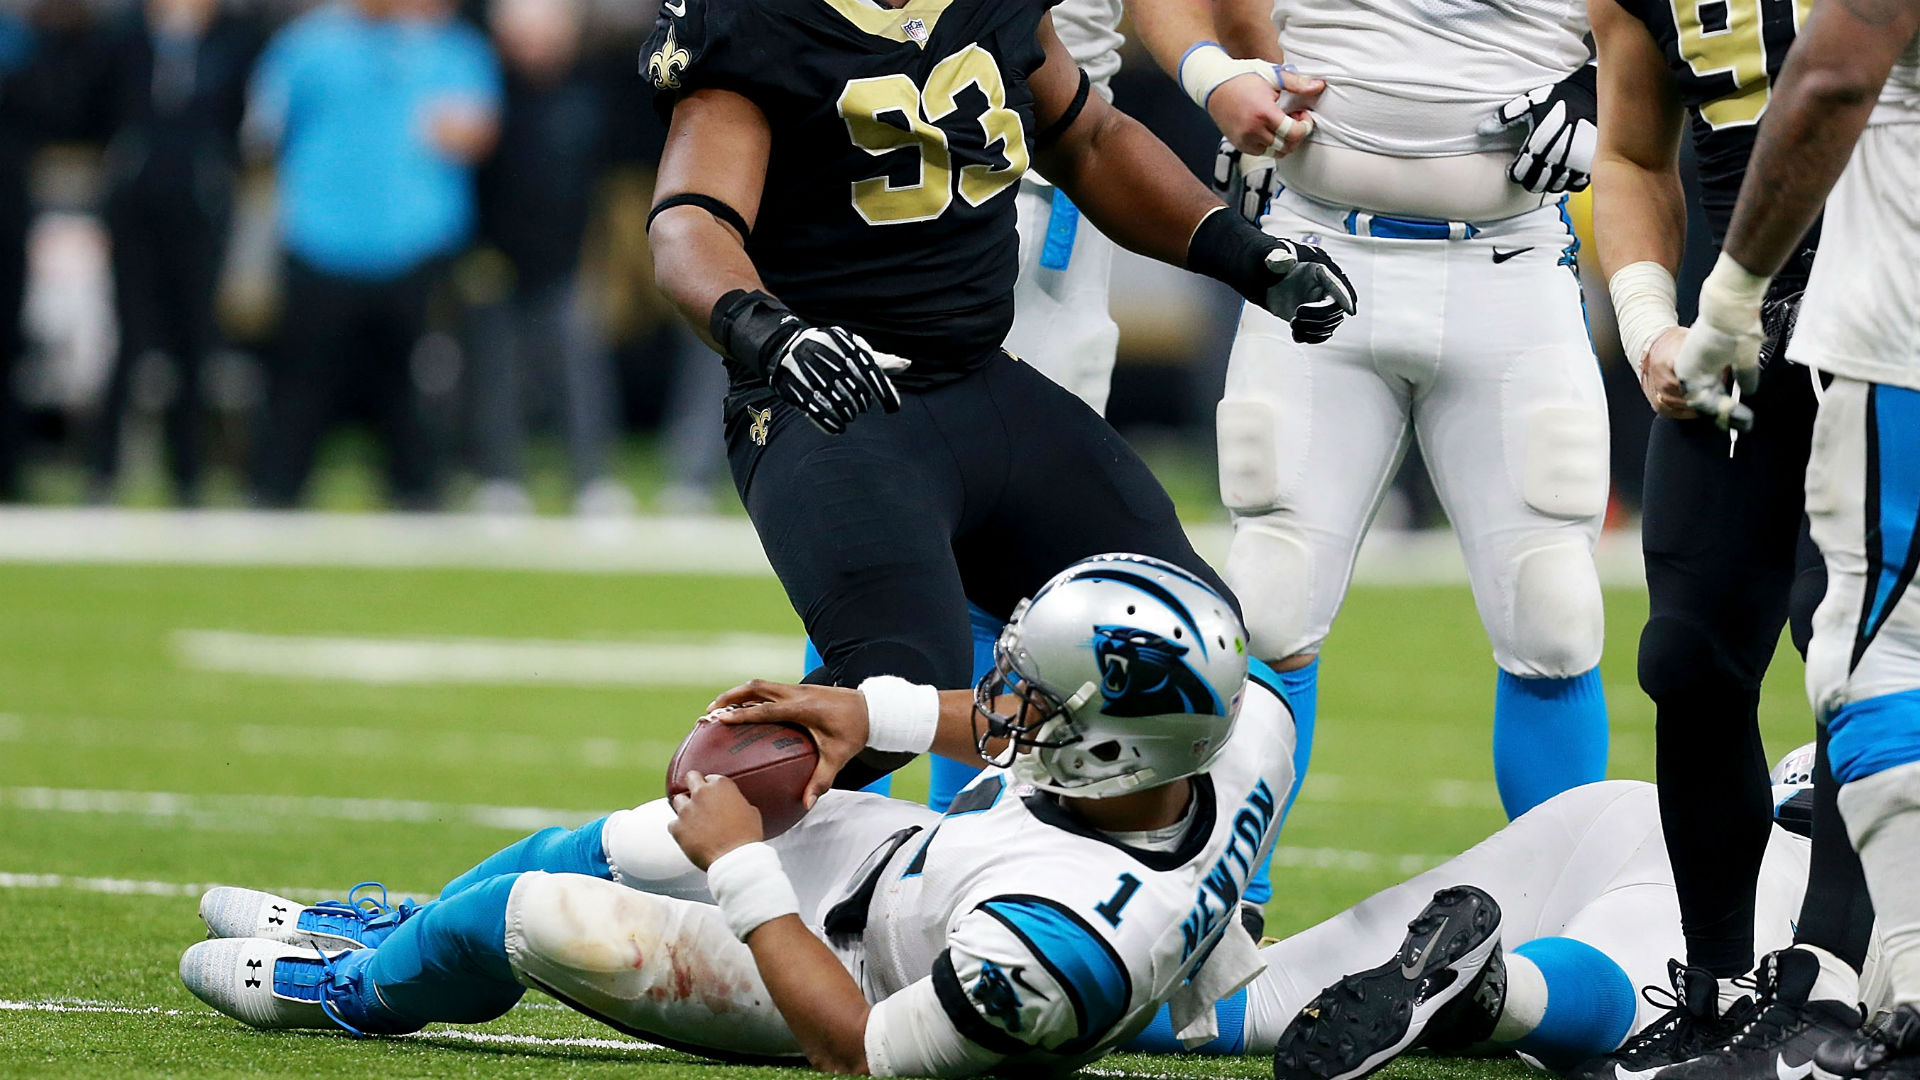 Carolina Panthers vs. New Orleans Saints Odds, Wild Card NFL Betting Pick